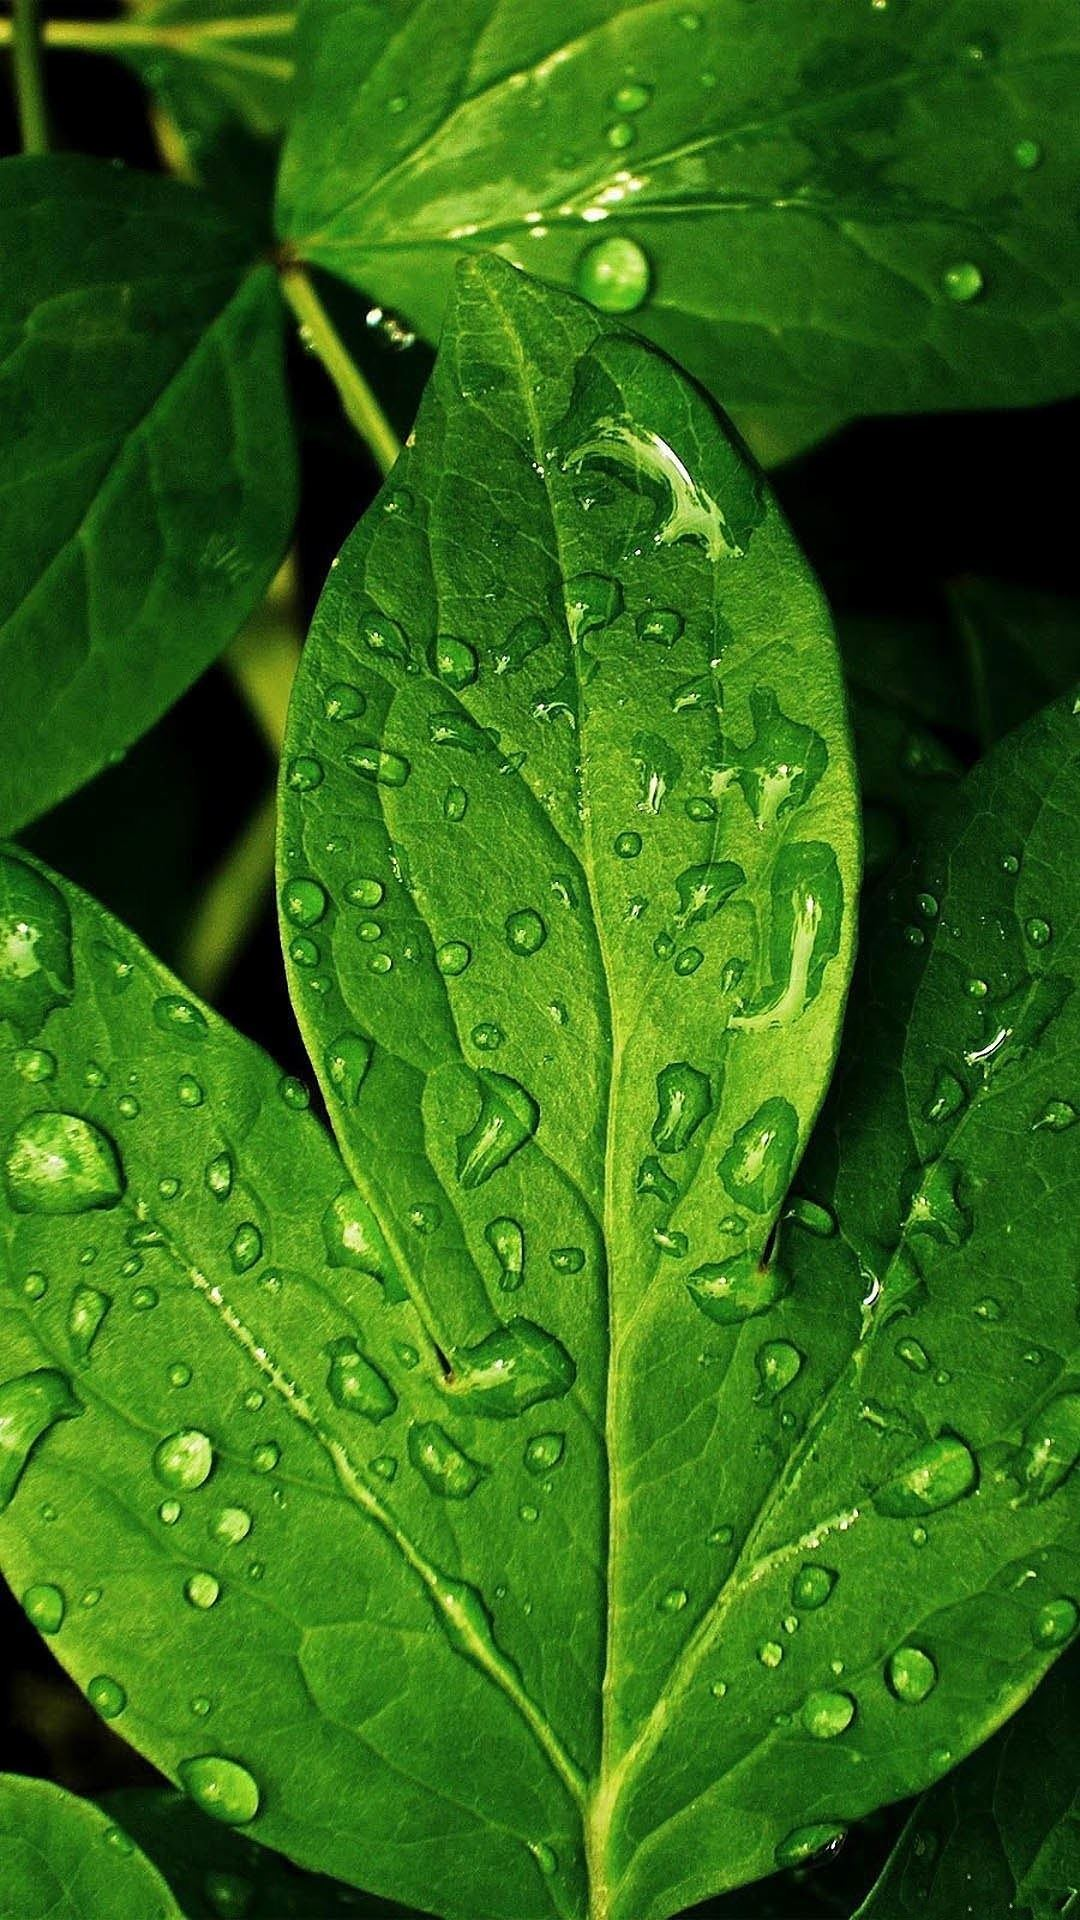 Morning Dew Green Leaf iPhone 6 Plus HD Wallpaper